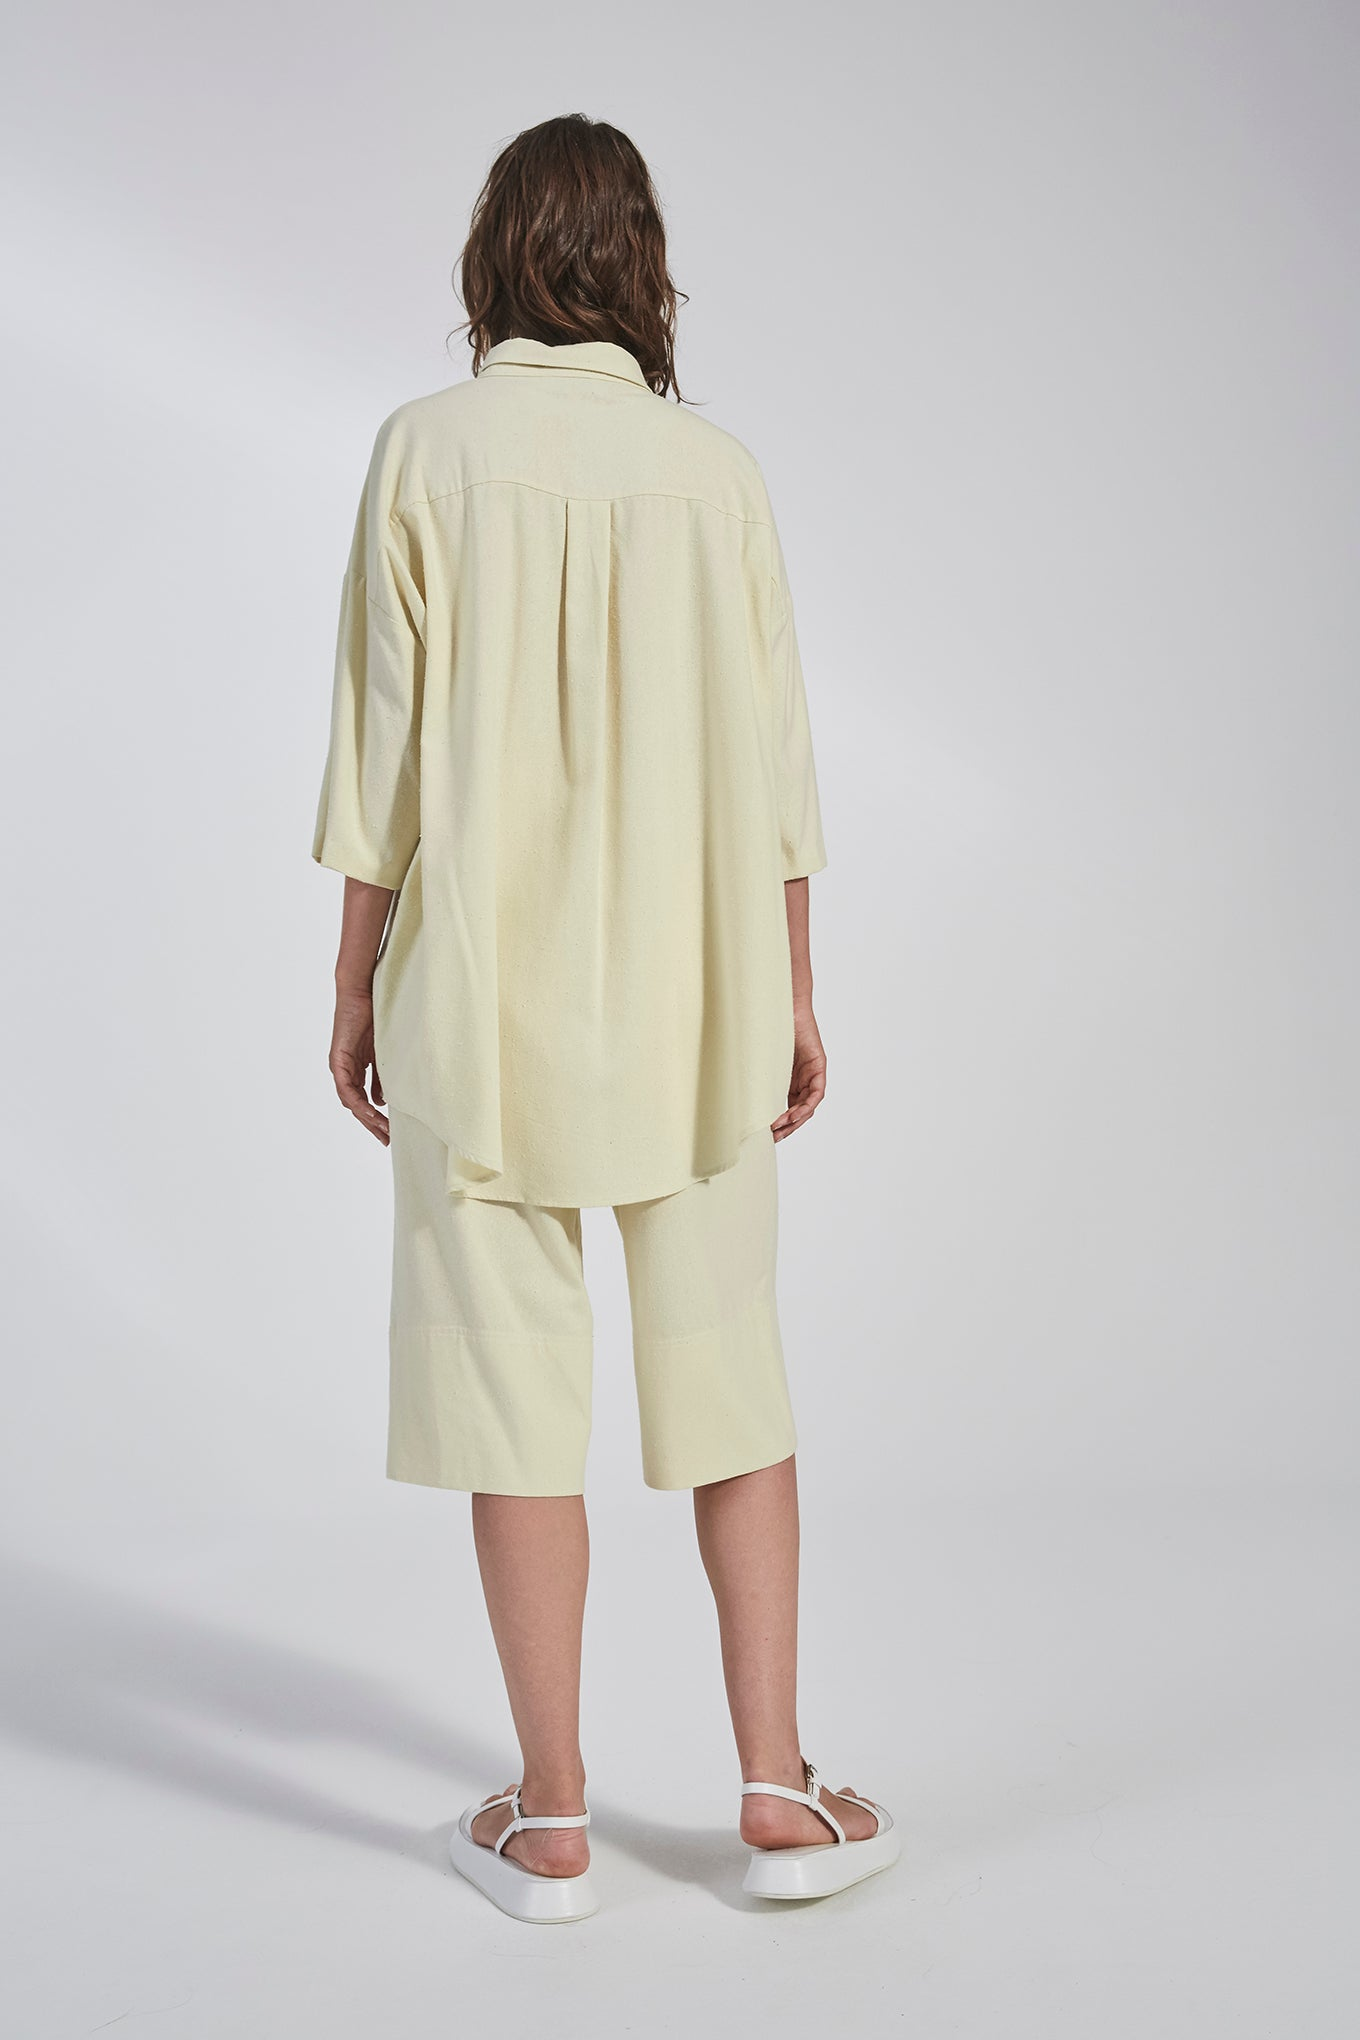 Cami Shorts - Lemon - Raw Silk